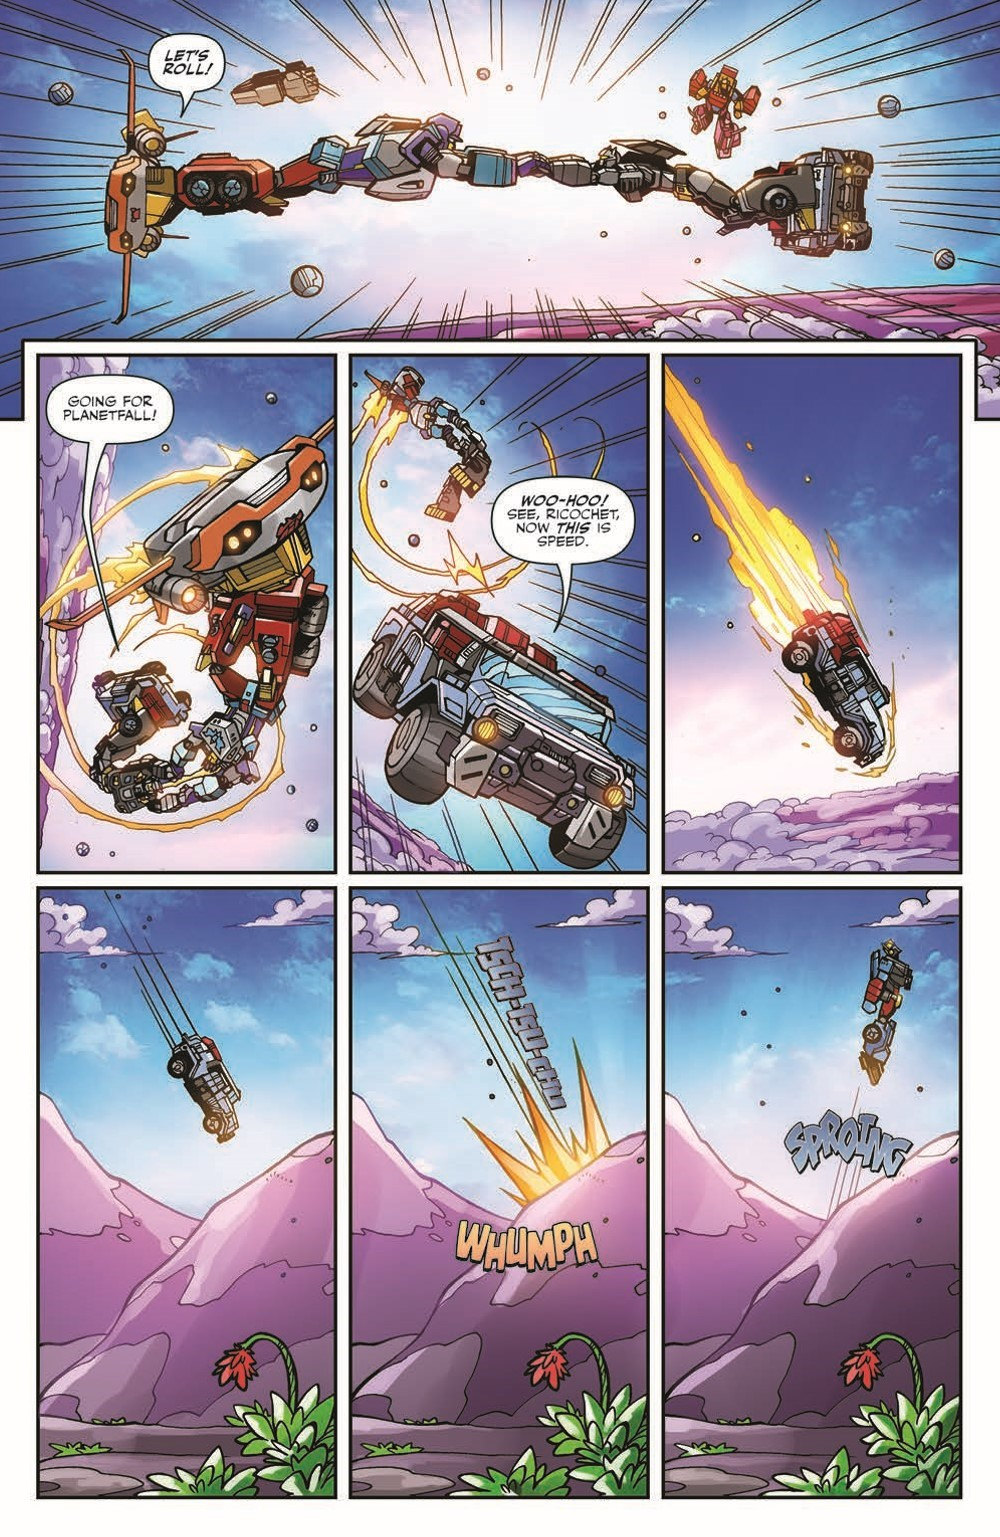 TFWreckers01-pr-7 ComicList Previews: TRANSFORMERS WRECKERS TREAD AND CIRCUITS #1 (OF 4)